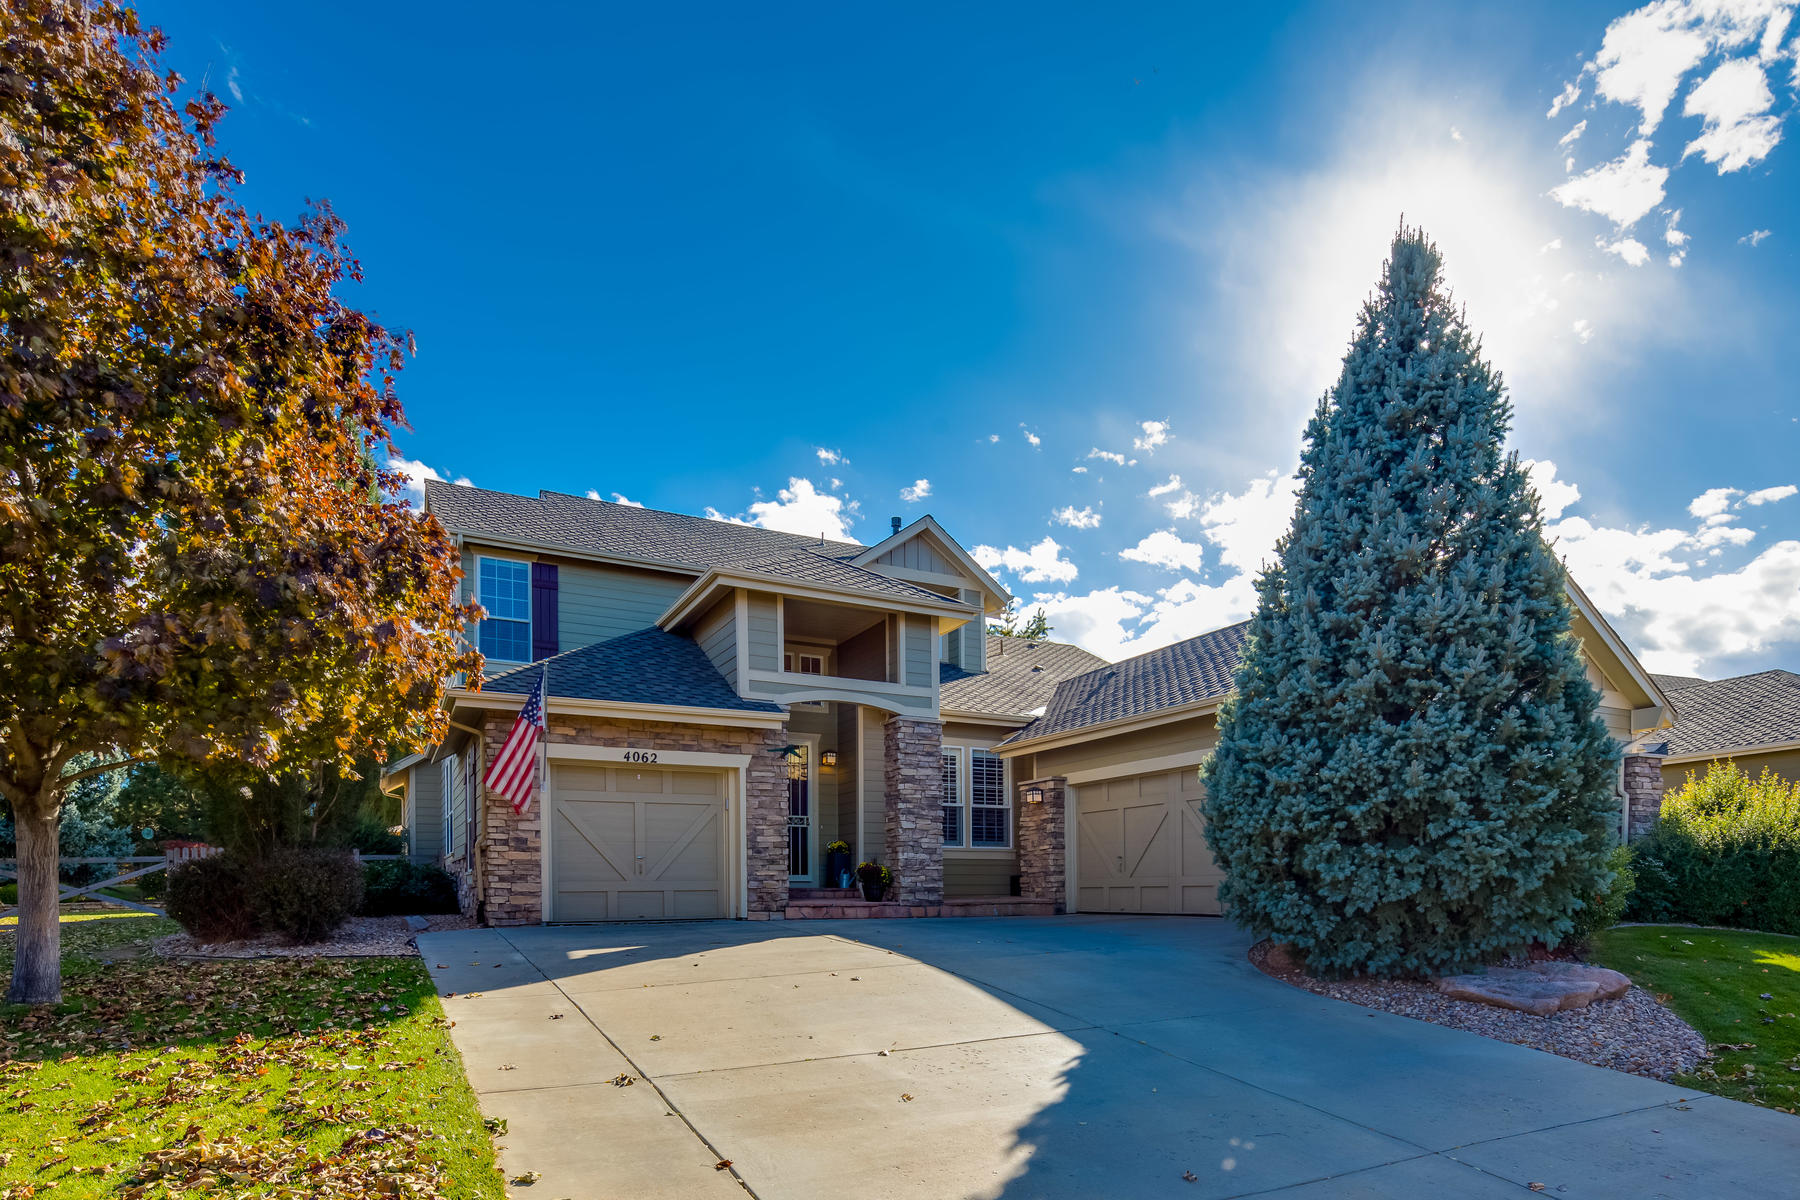 Single Family Home for Active at Legacy Ridge West Home on a Large Professionally Landscaped Corner Lot 4062 W 105th Way Westminster, Colorado 80031 United States